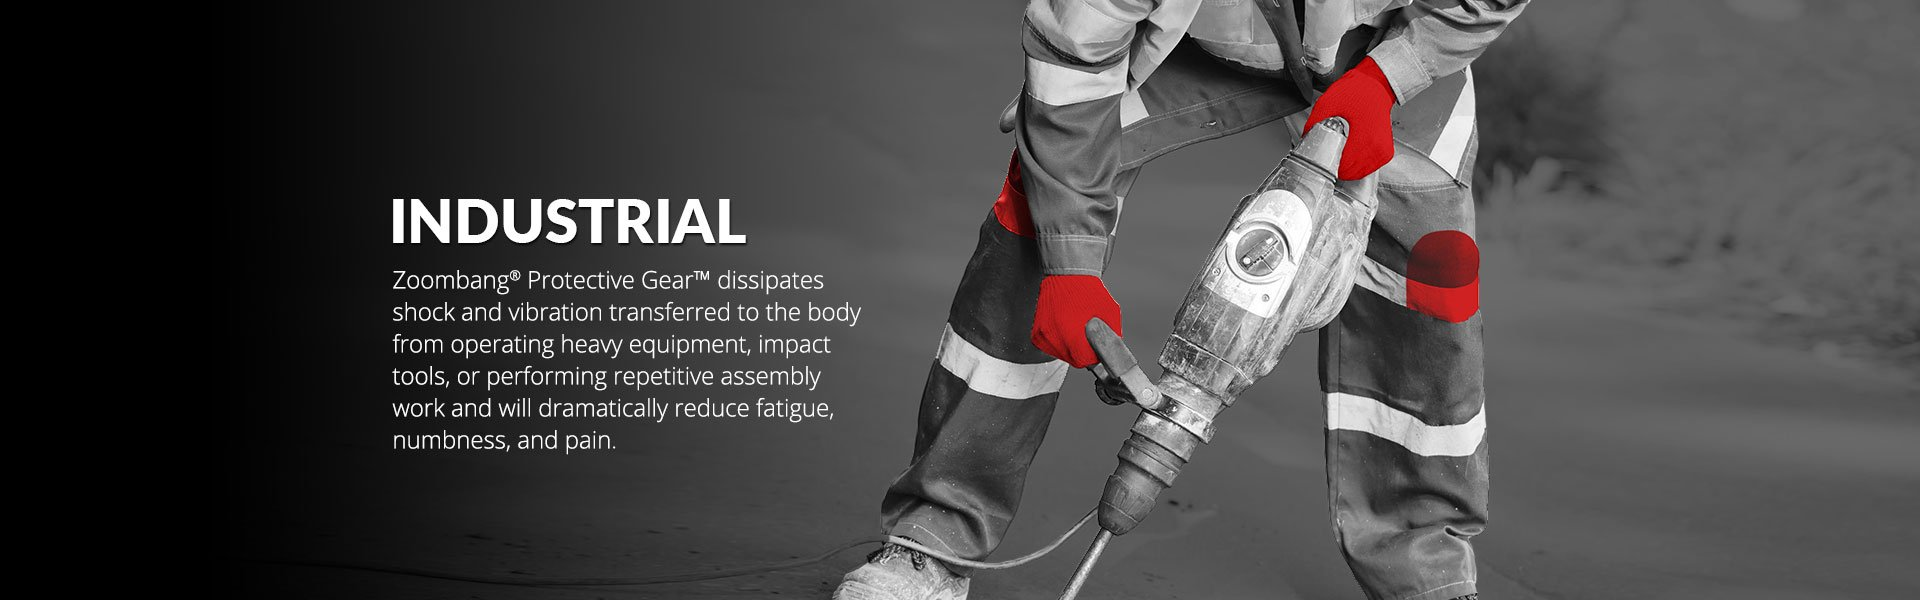 industrial protective gear